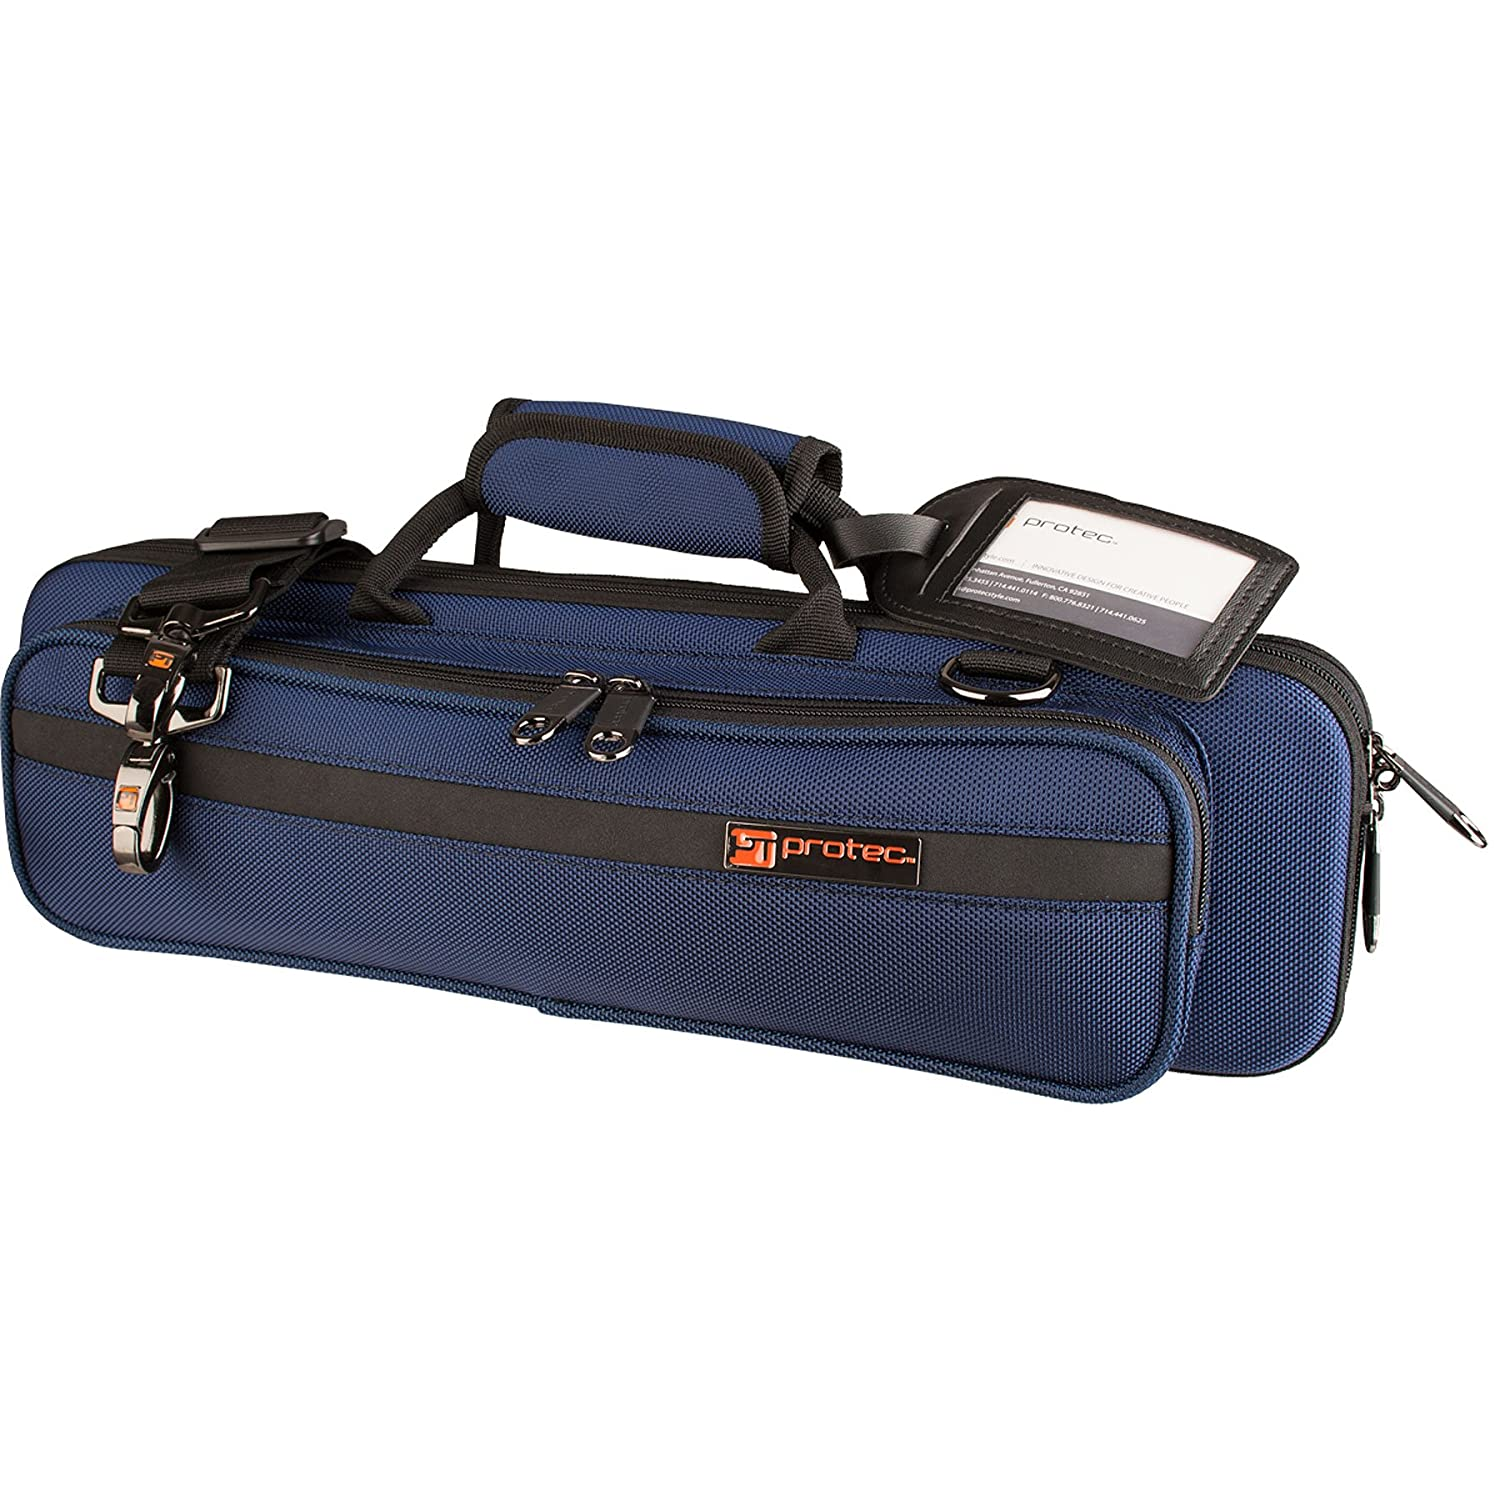 Protec Flute (B and C Foot) Slimline PRO PAC Case, Purple PB308PR